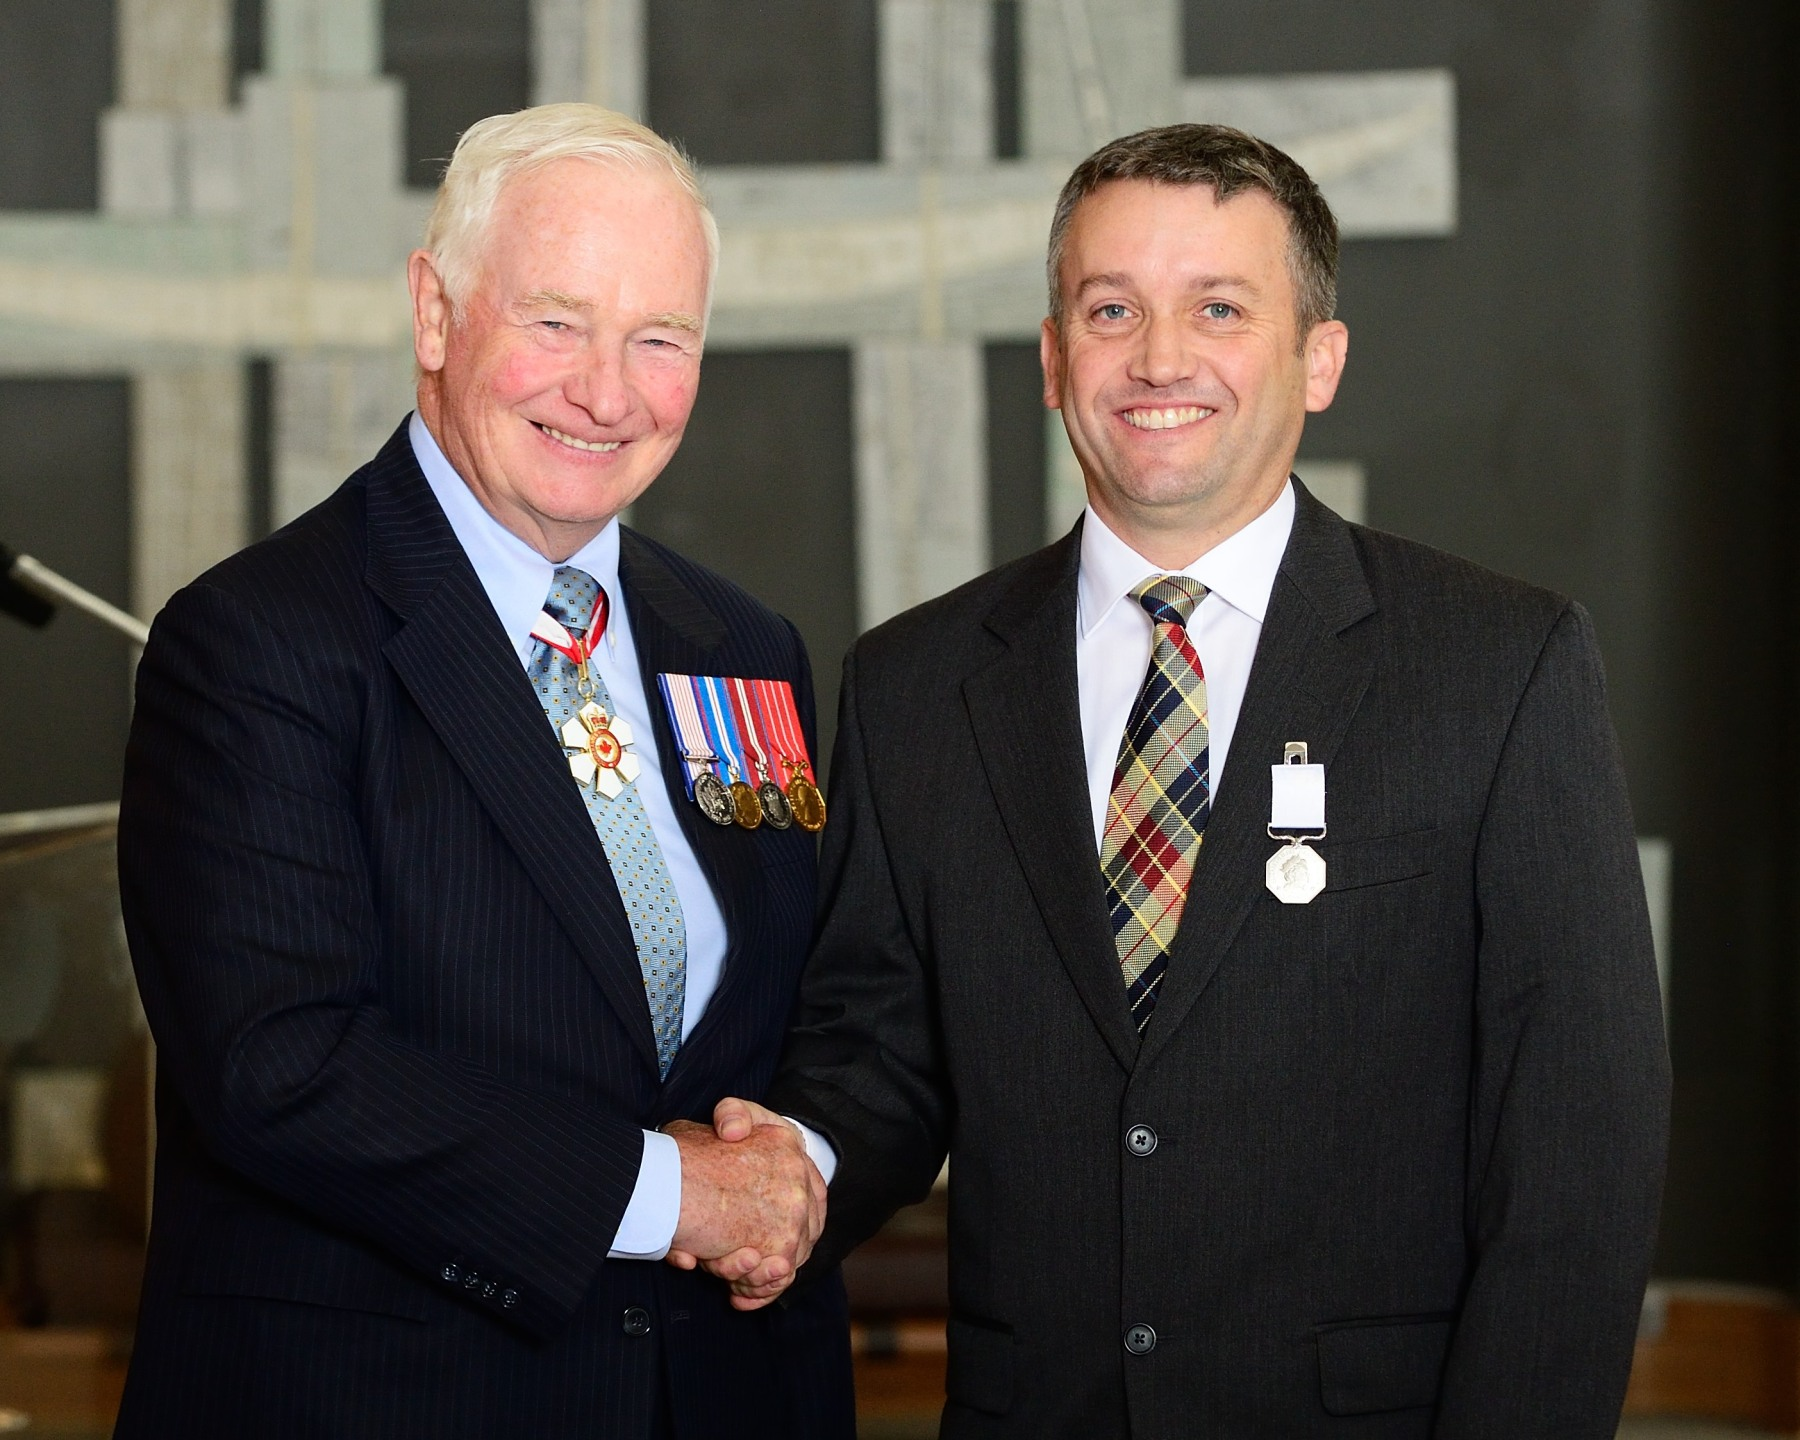 The Governor General presented the Polar Medal to Jonathan Moore, of Ottawa, Ontario. As a senior underwater archaeologist and sonar operator, Mr. Moore helped to unlock the mysteries of the lost Franklin Expedition. He spent six field seasons between 2008 and 2014 searching the Arctic Ocean for the wreck of HMS Erebus, and was part of the Parks Canada team that discovered and dived on the shipwreck in September 2014.